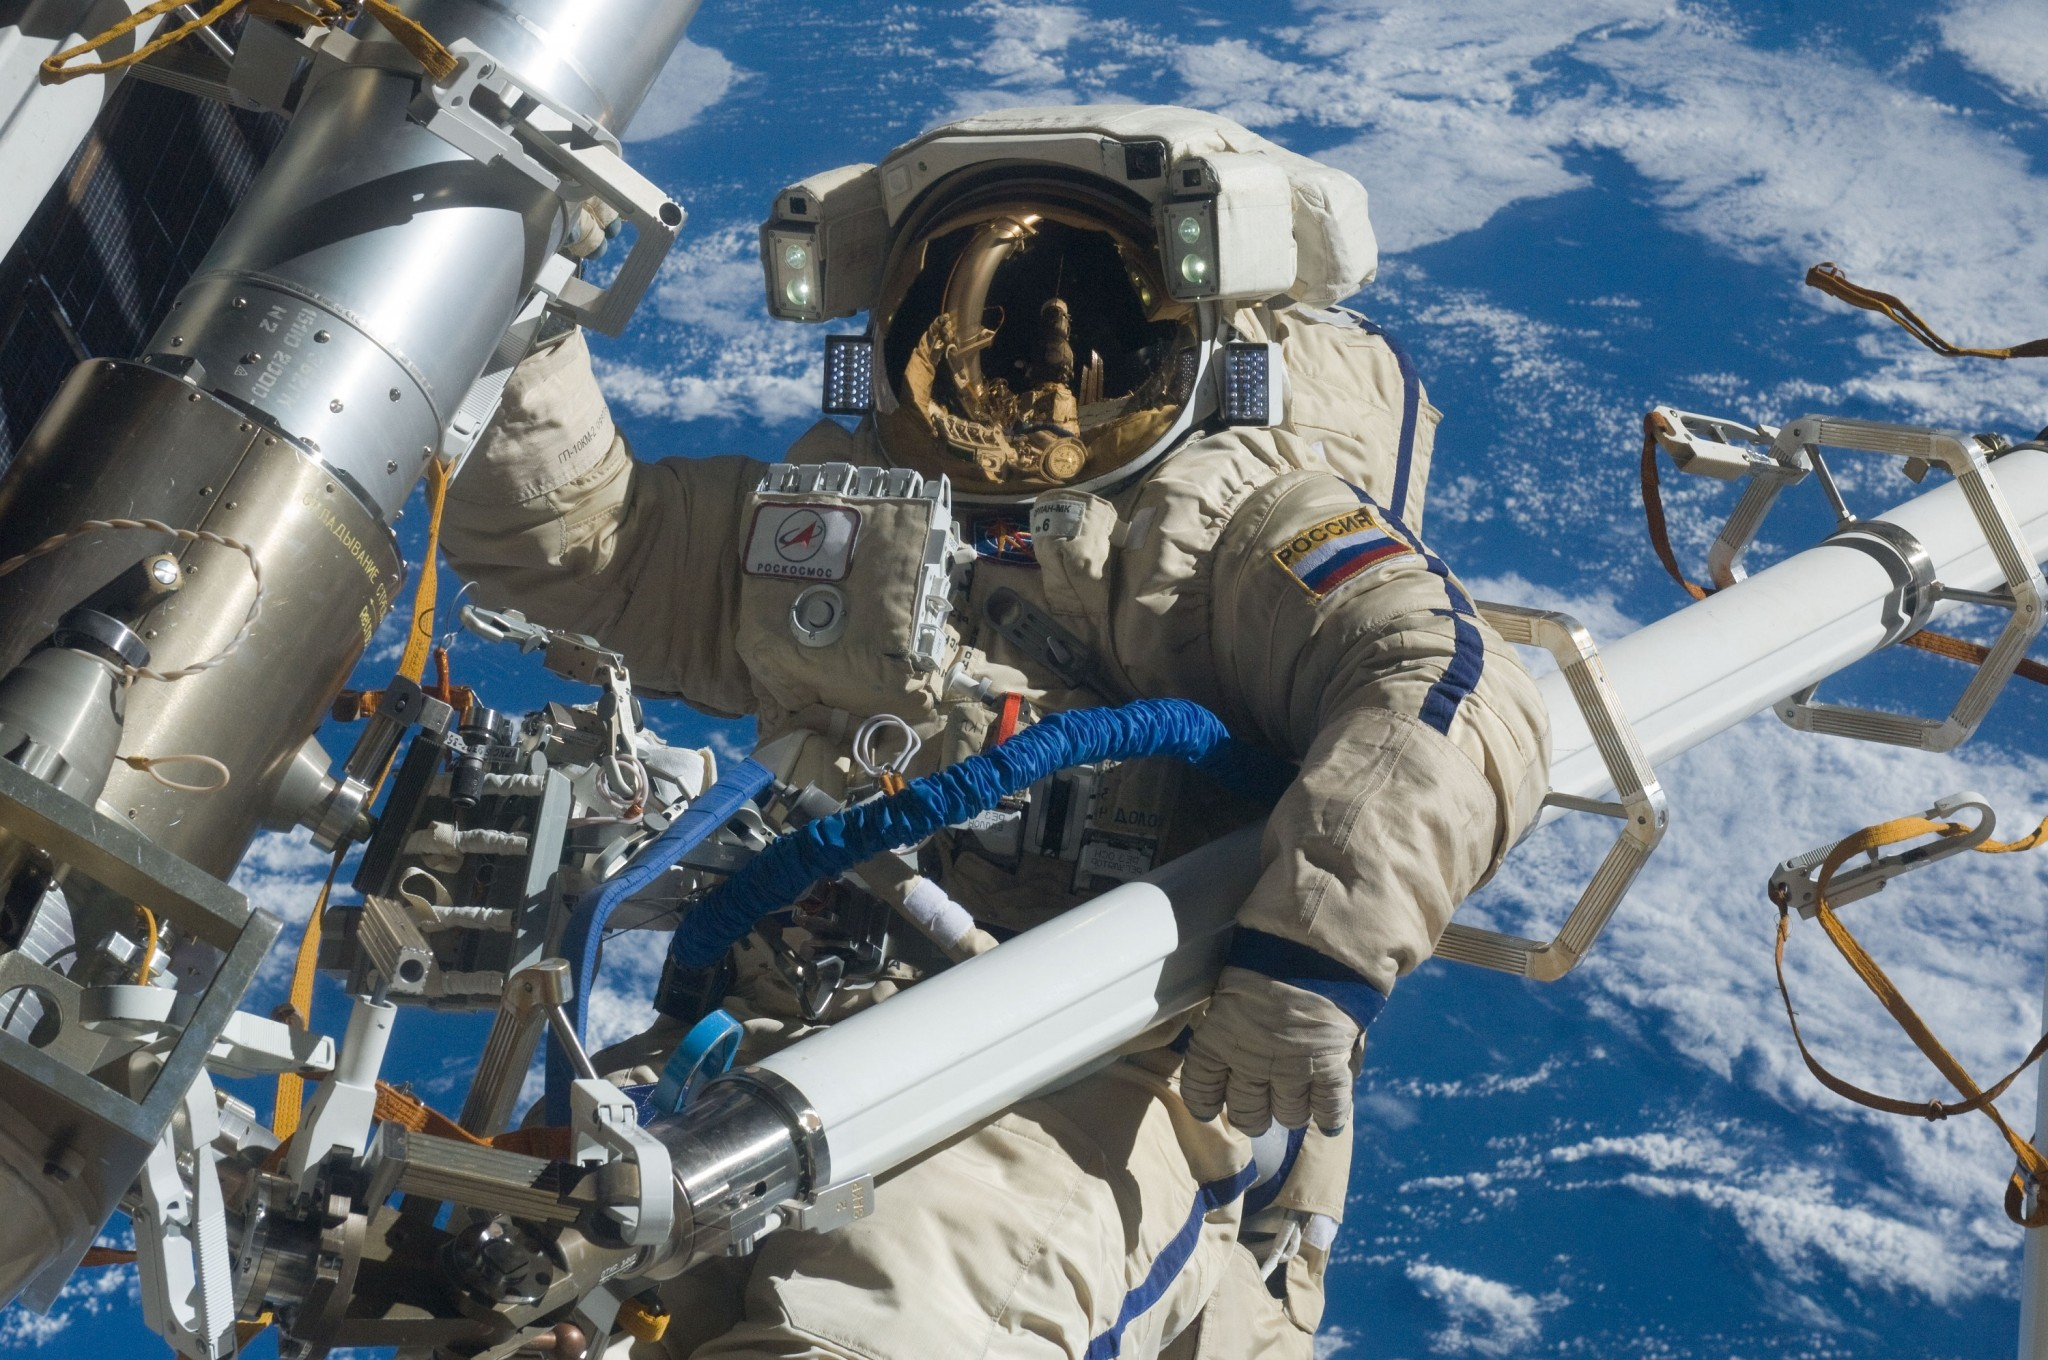 Russian cosmonaut Anton Shkaplerov participates in a space walk. Photo: NASA // Wikimedia Commons.